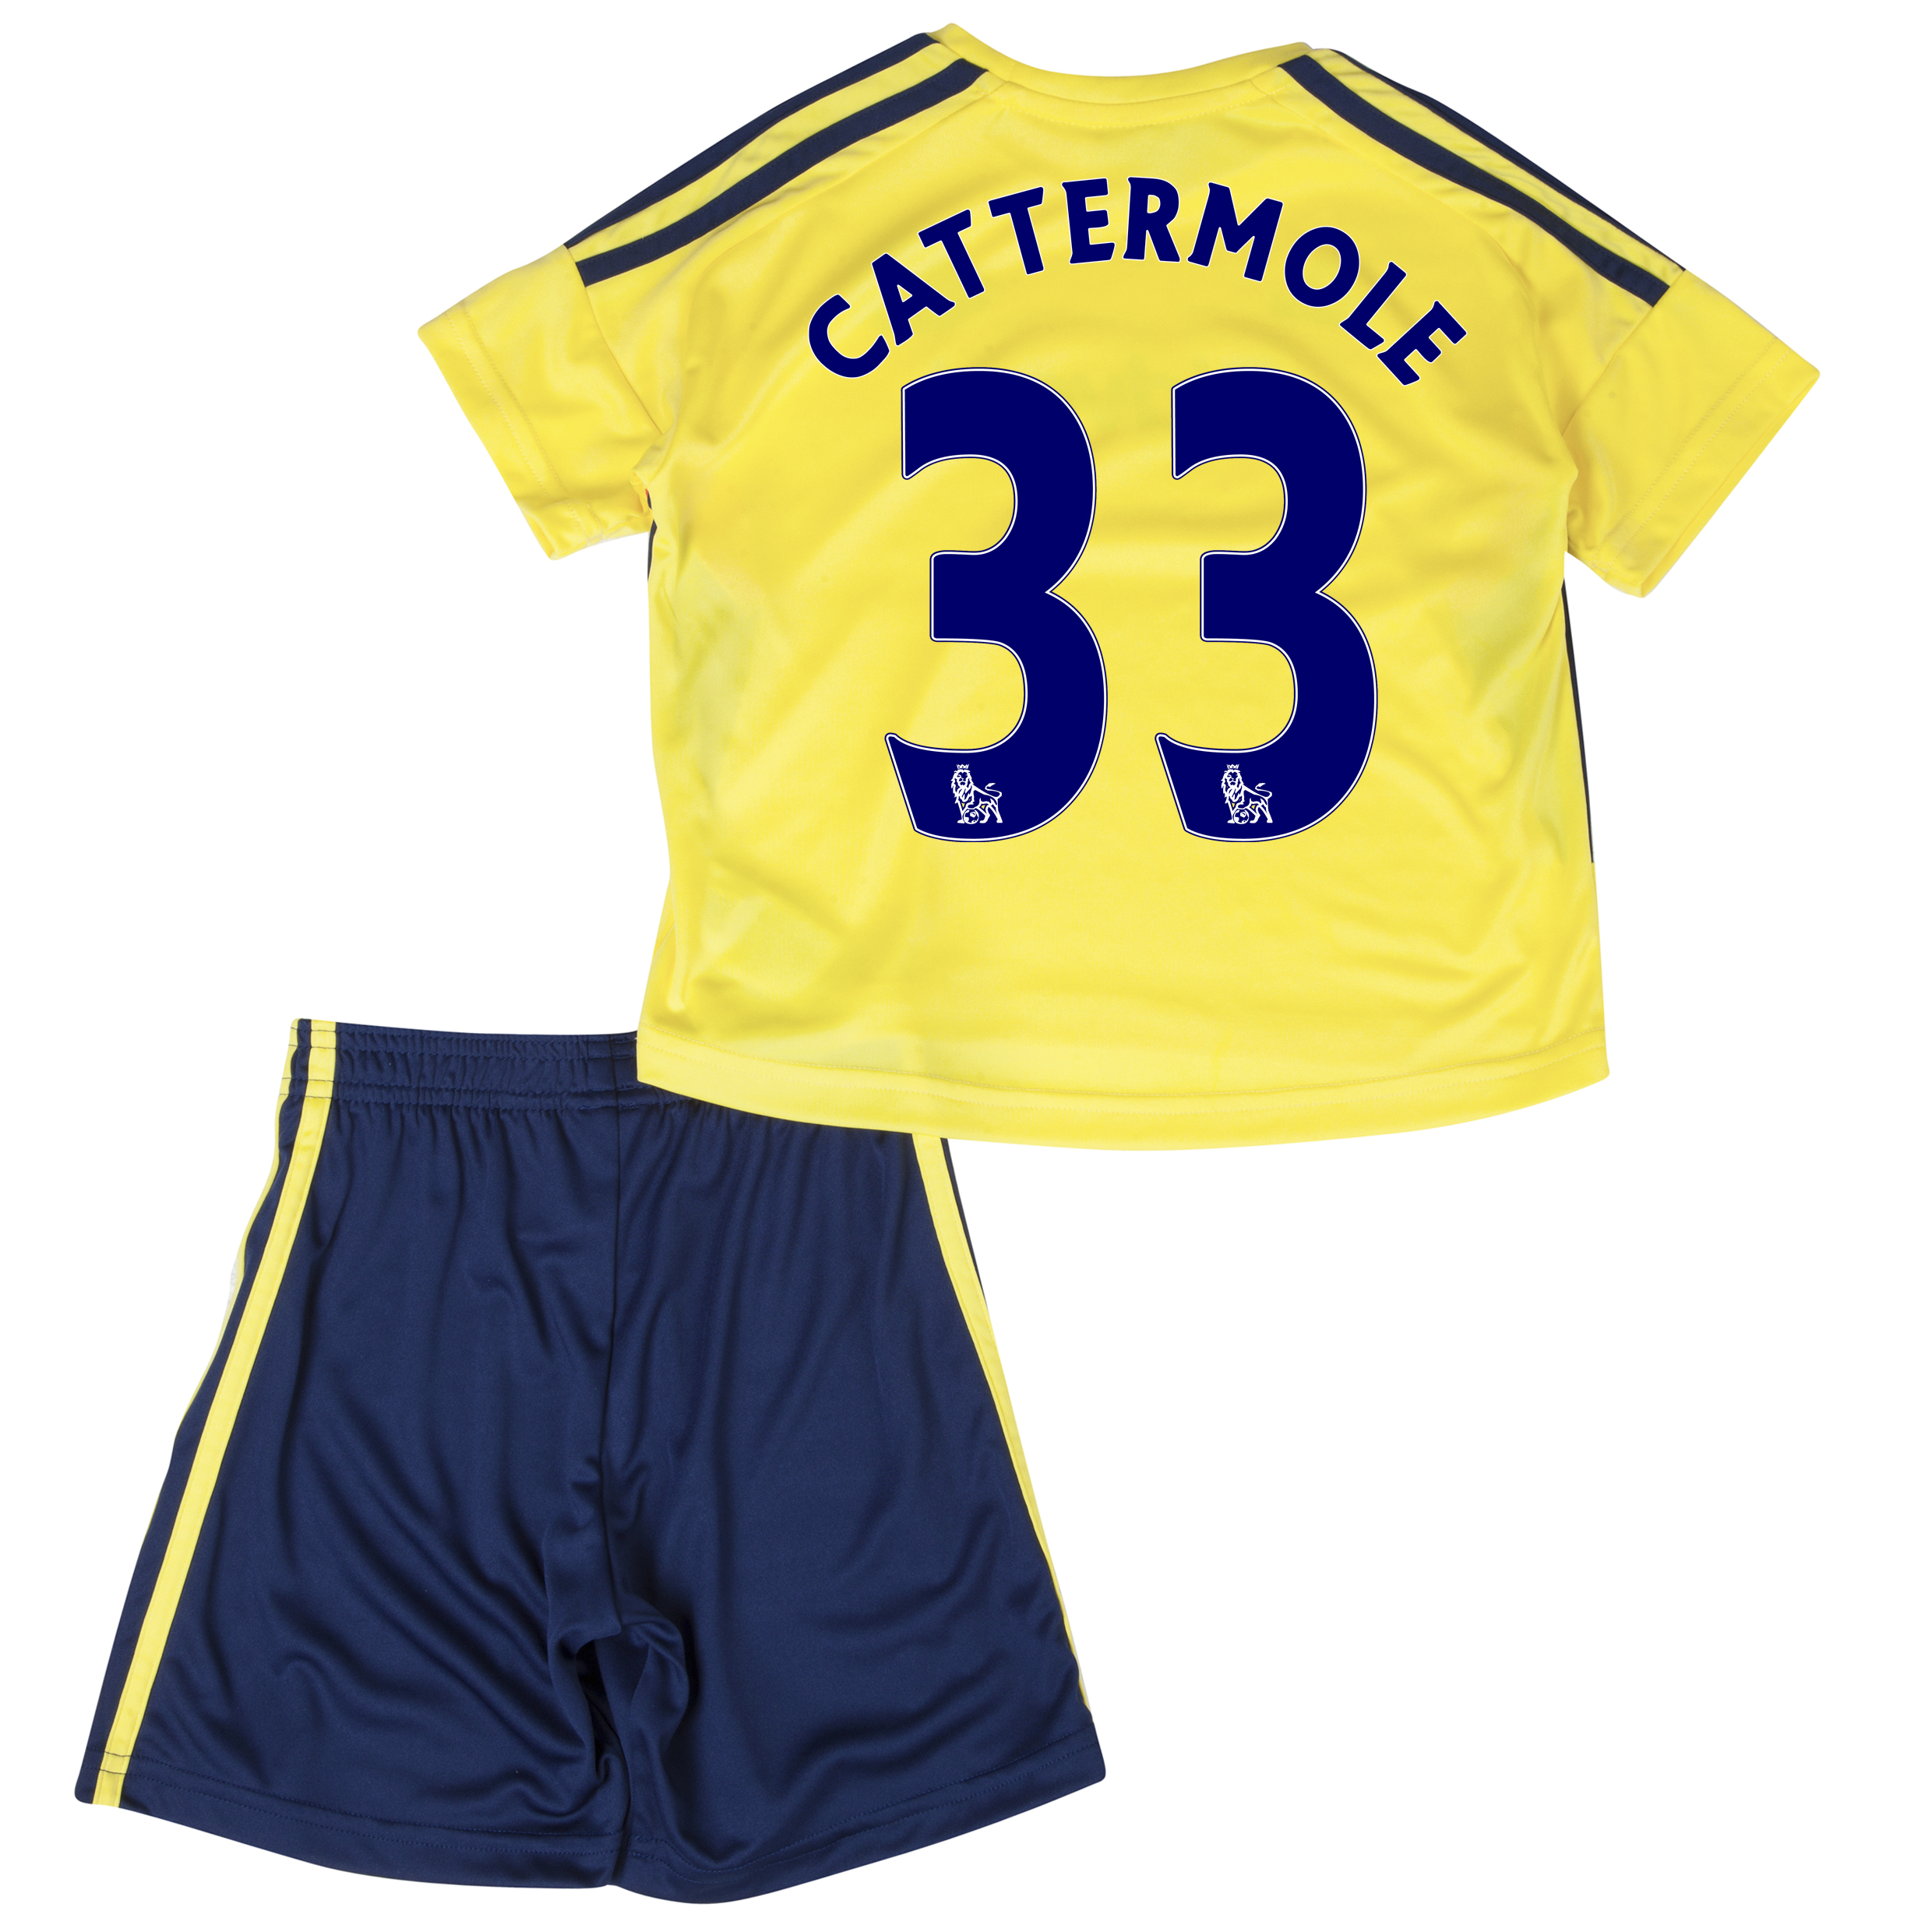 Sunderland Away Minikit 2013/14 - Infants with Cattermole 33 printing